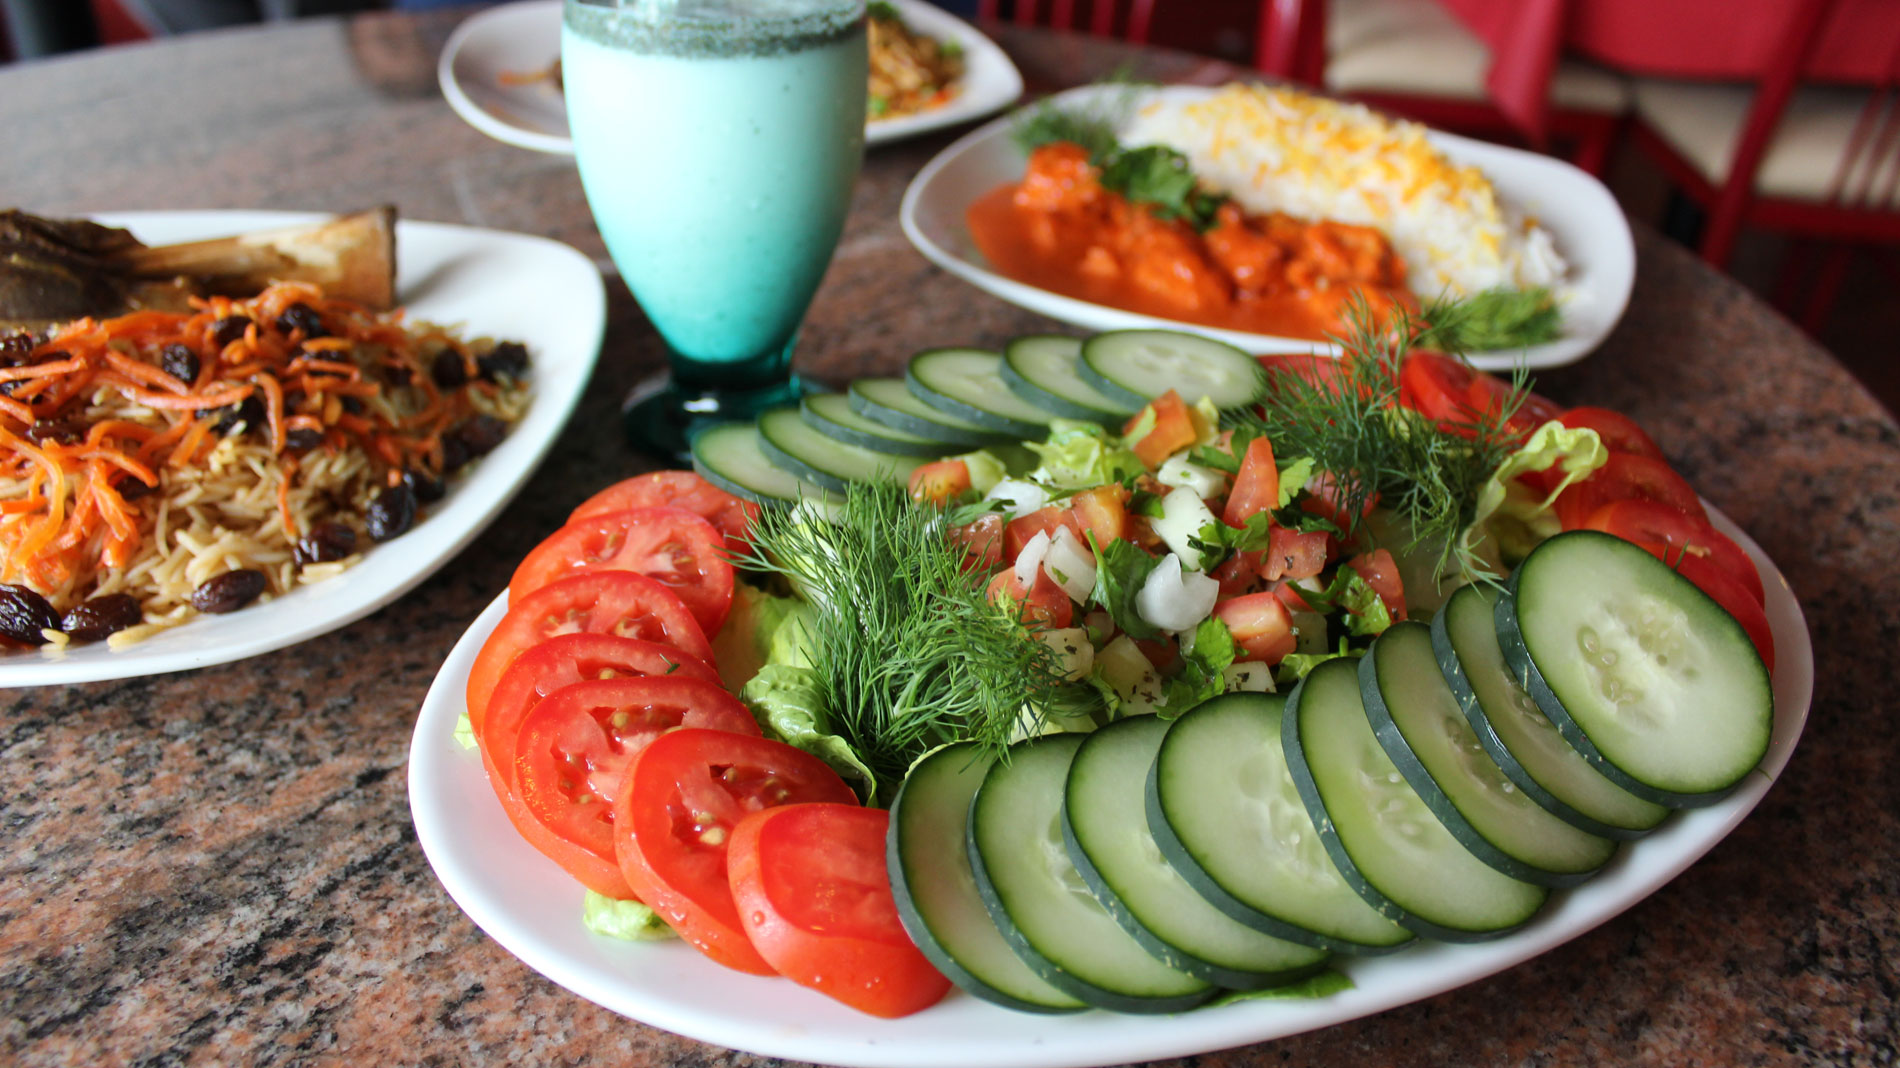 a cucumber and tomato salad on a table with other middle eastern dishes in the background